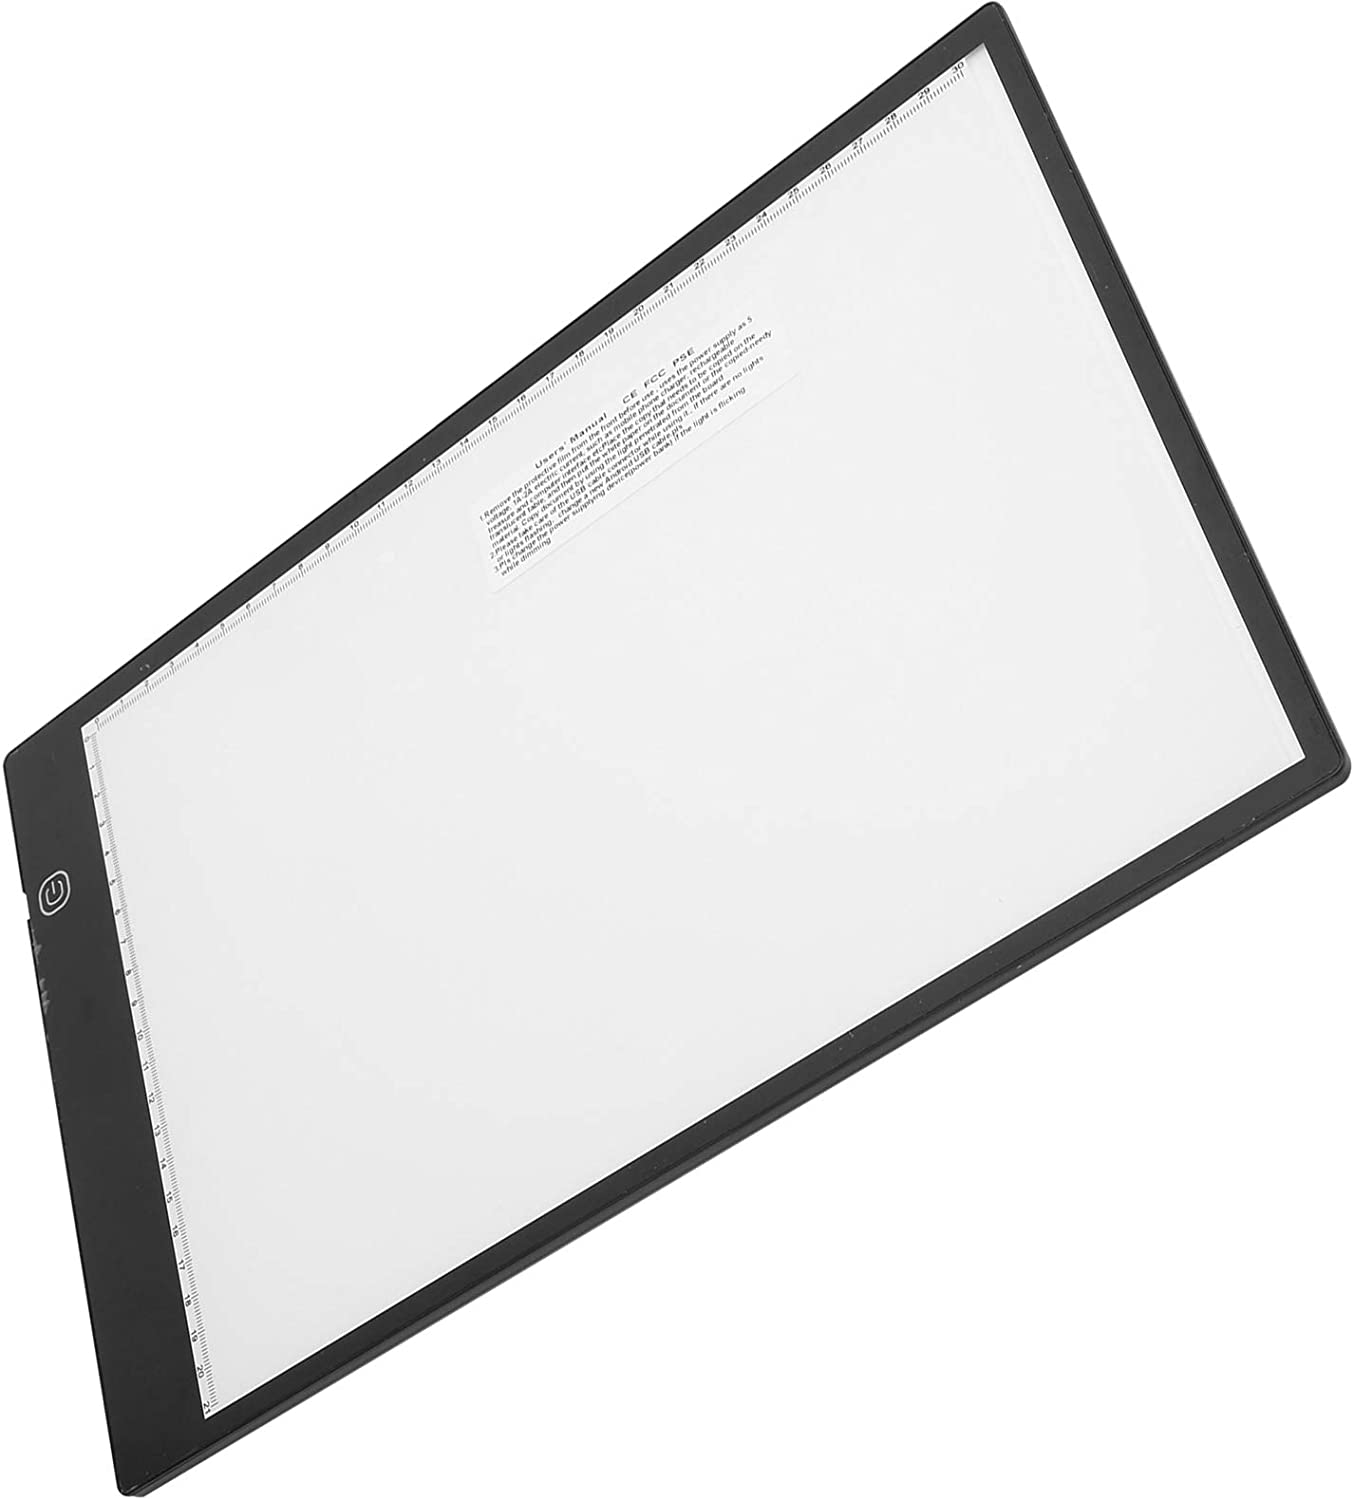 Light Box Drawing Popular Don't miss the campaign Board LED Dimmable St A4B Copy